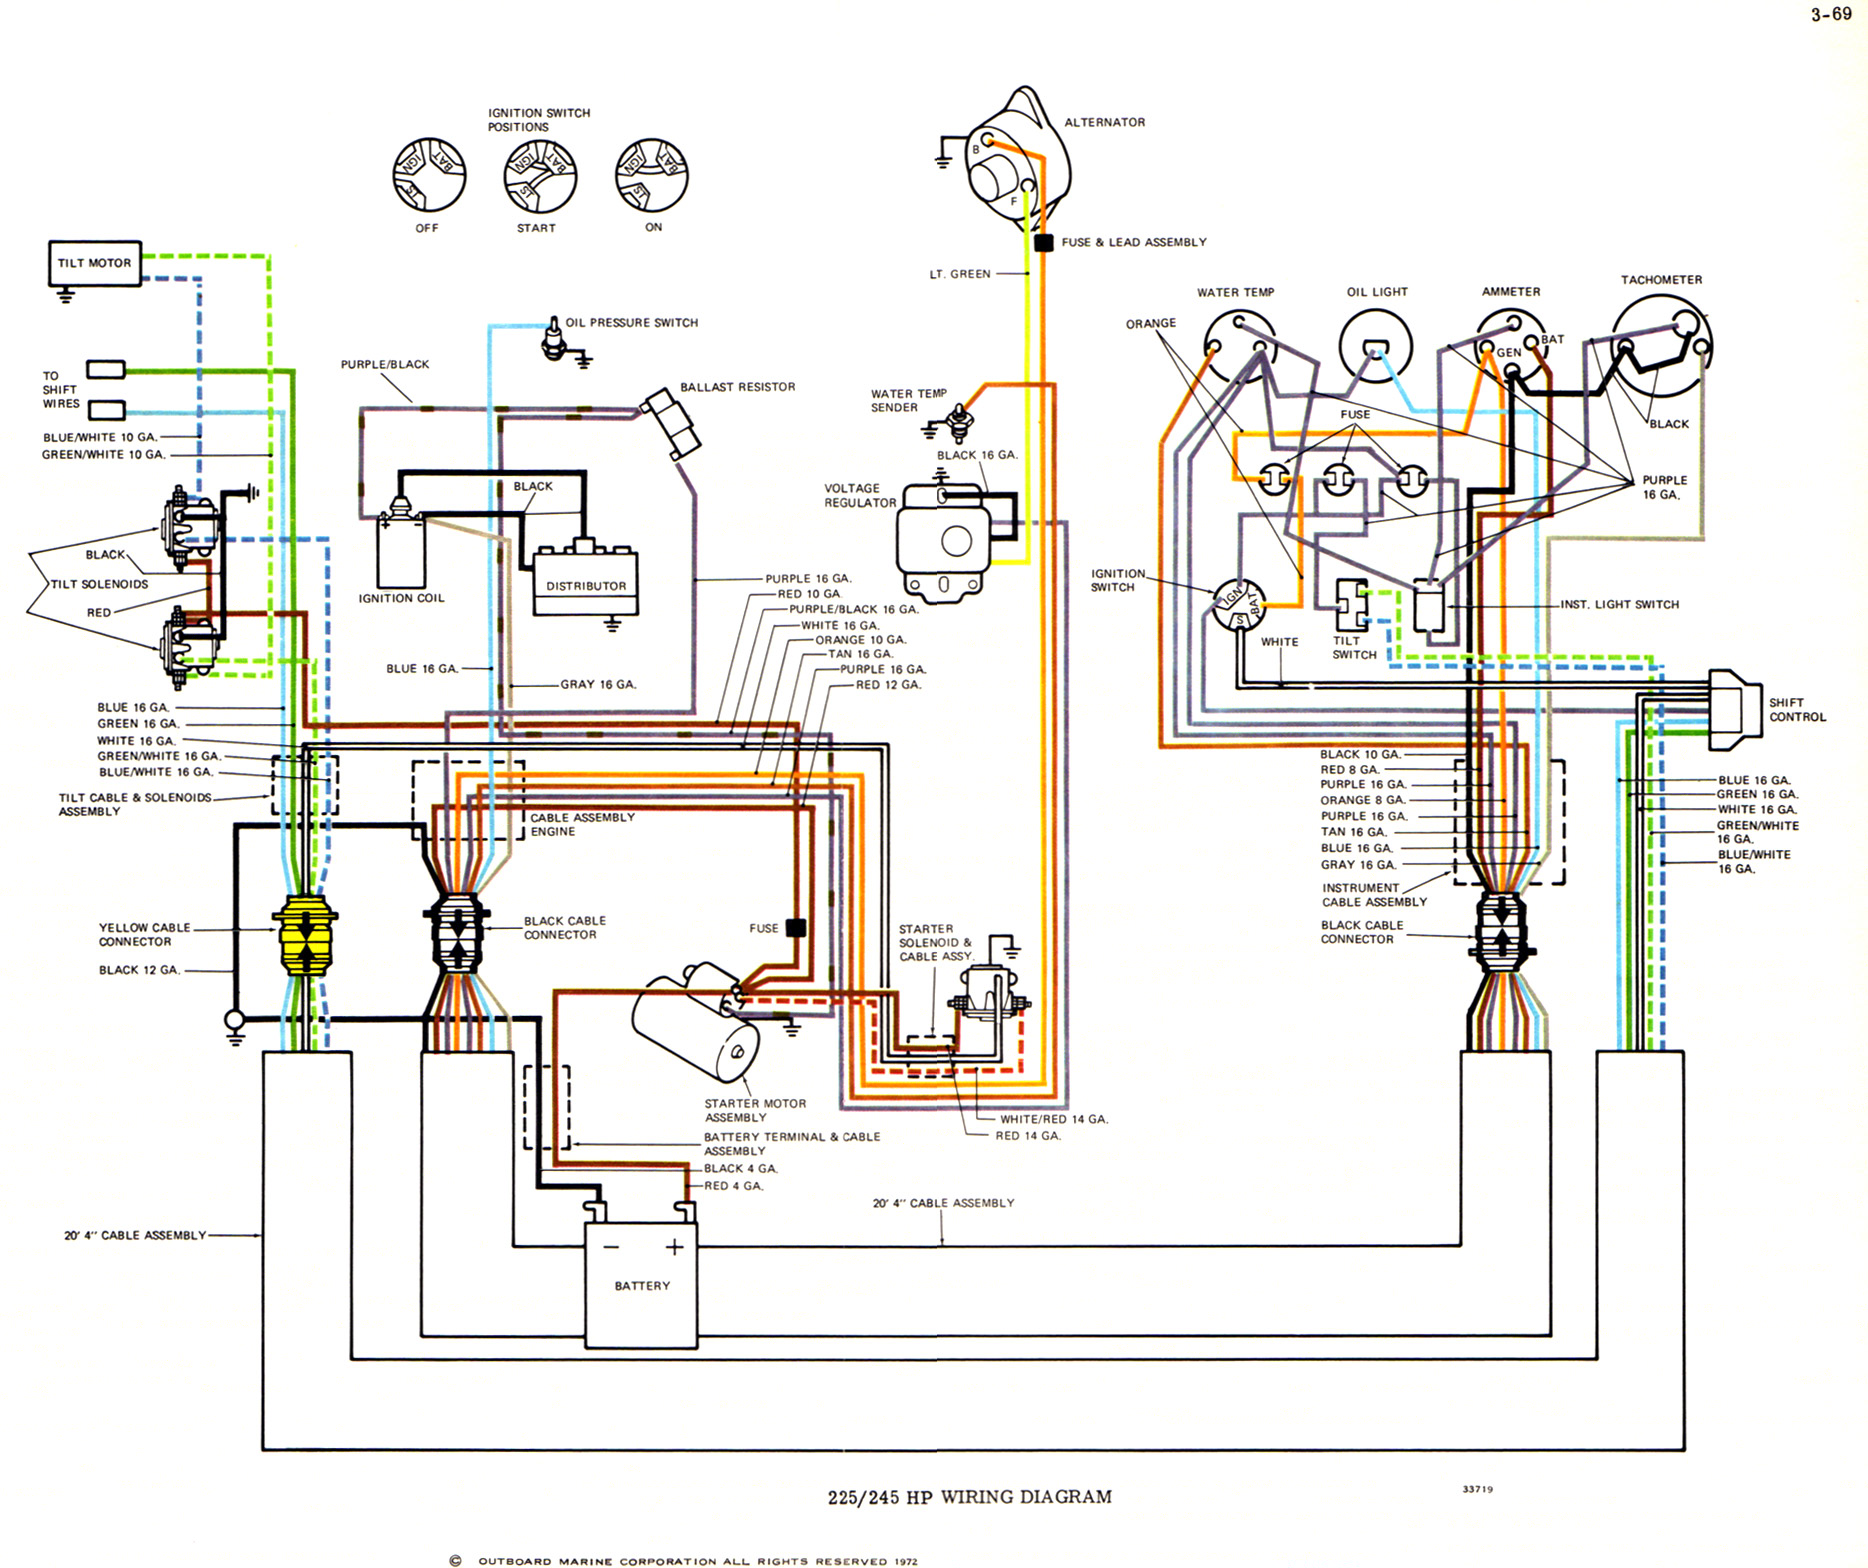 73_OMC_V8_all_big omc boat technical info omc wiring harness diagram at virtualis.co